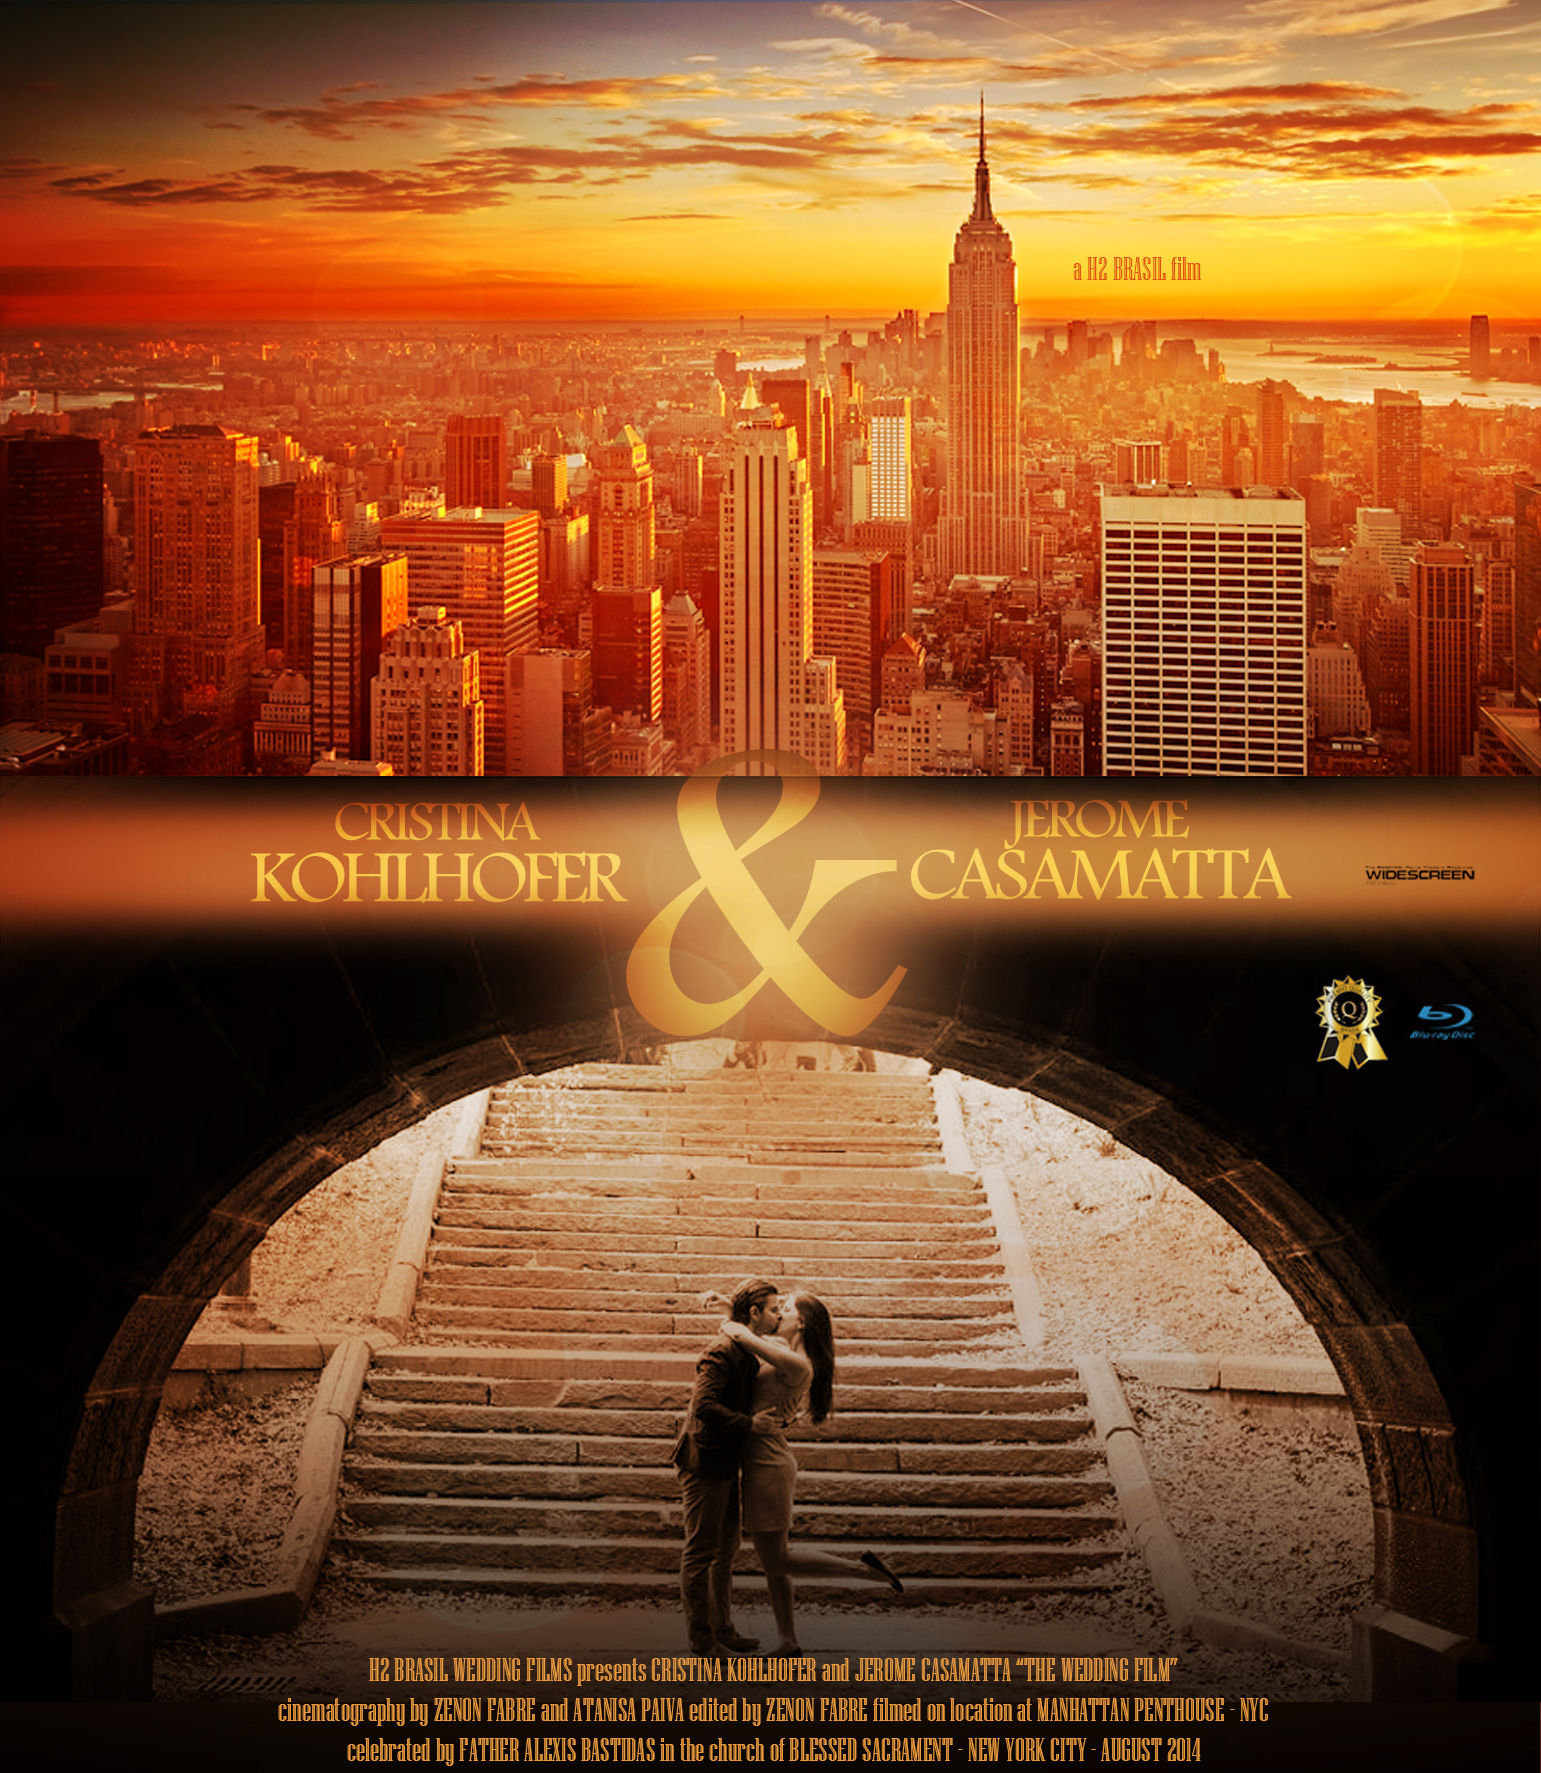 "Manhattan - H2 WEDDING FILMS presents CRISTINA KOHLHOFER and JEROME CASAMATTA ""THE WEDDING FILM"" cinematography by ZENON FABRE and ATANISA PAIVA edited by ZENON FABRE filmed on location at MANHATTAN PENTHOUSE - NYC celebrated by FATHER ALEXIS BASTIDAS in the church of BLESSED SACRAMENT - NEW YORK CITY"